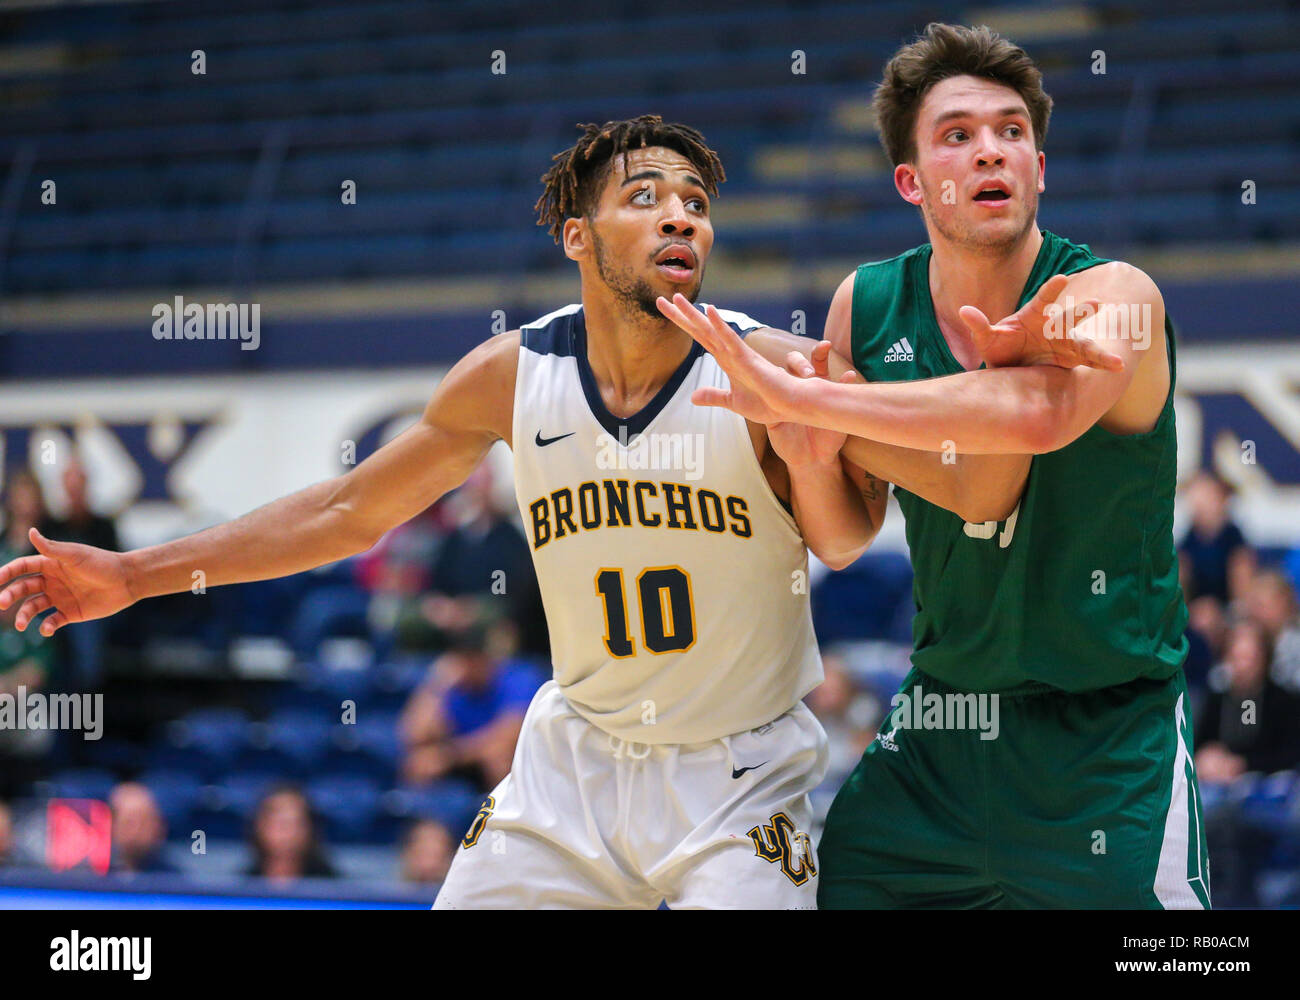 Oklahoma, USA. 5th Jan, 2019. University of Central Oklahoma Forward Adarius Avery (10) and Northwest Missouri Guard Joey Witthus (30) battle for position during a basketball game between the Northwest Missouri Bearcats and the Central Oklahoma Bronchos at Hamilton Field House in Edmond, OK. Gray Siegel/CSM/Alamy Live News Stock Photo